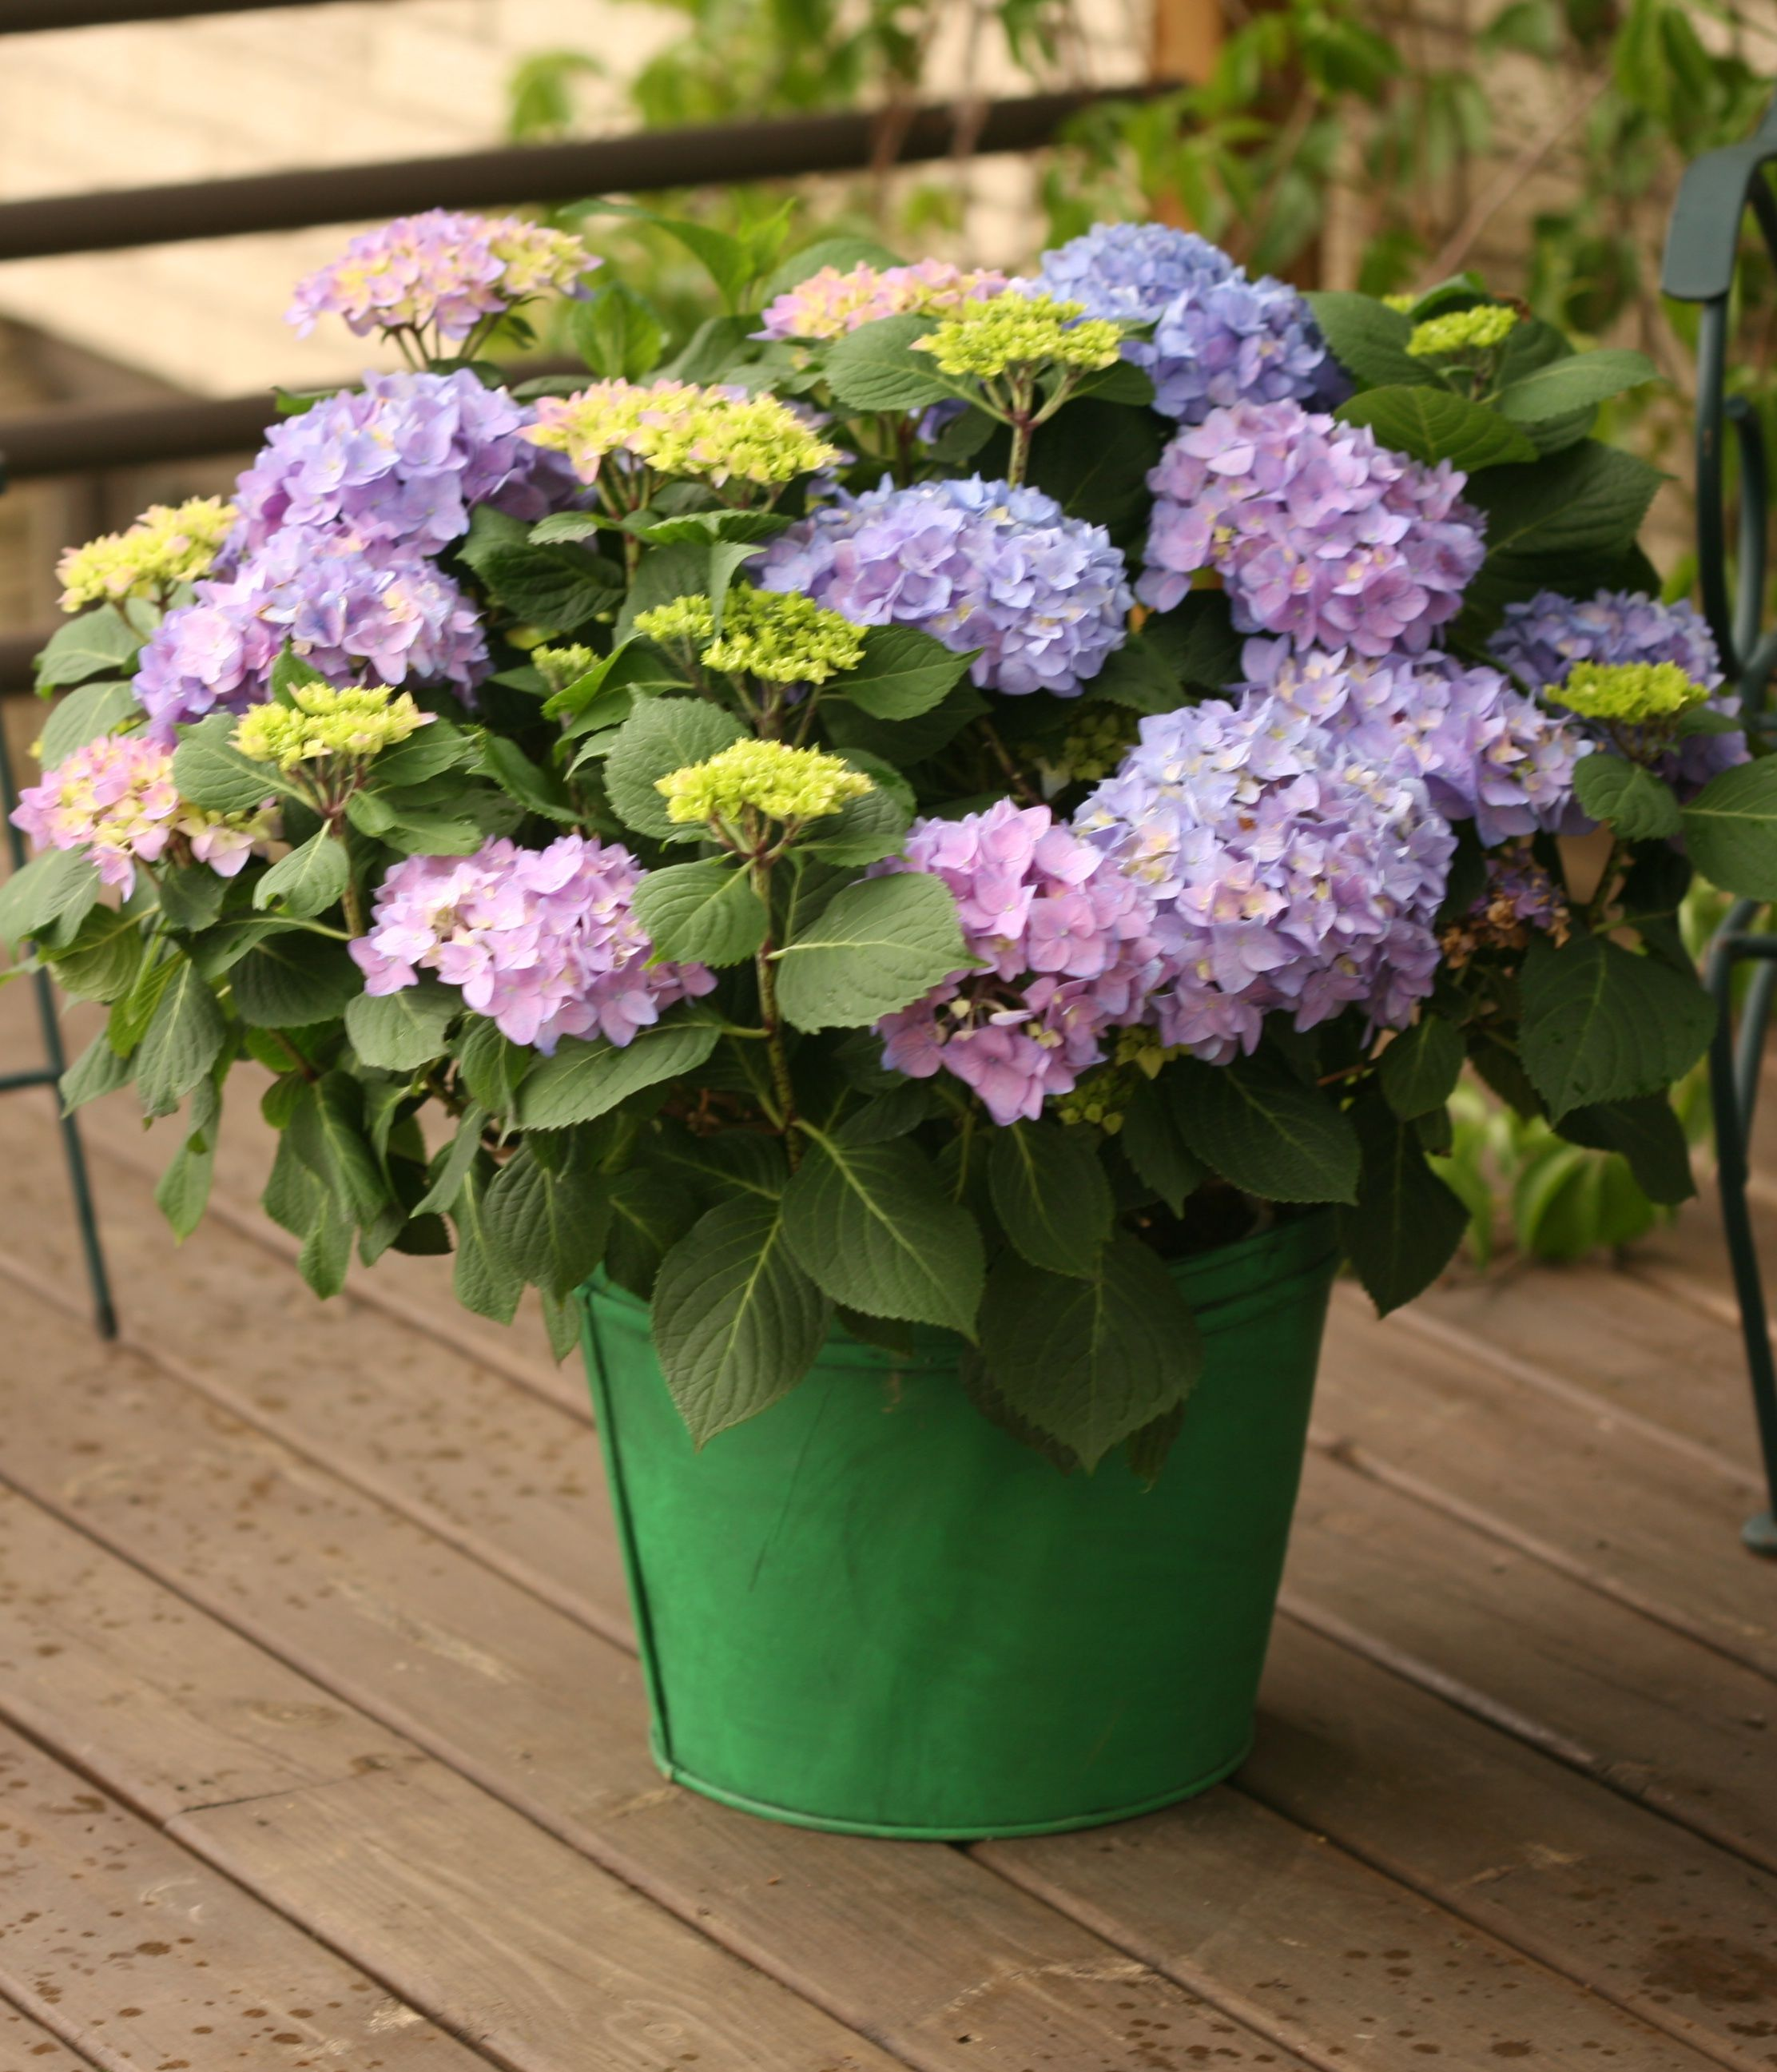 Letu0027s Dance Rhythmic Blue Hydrangea Will Only Mature To A Height Of 2 To 3  Feet